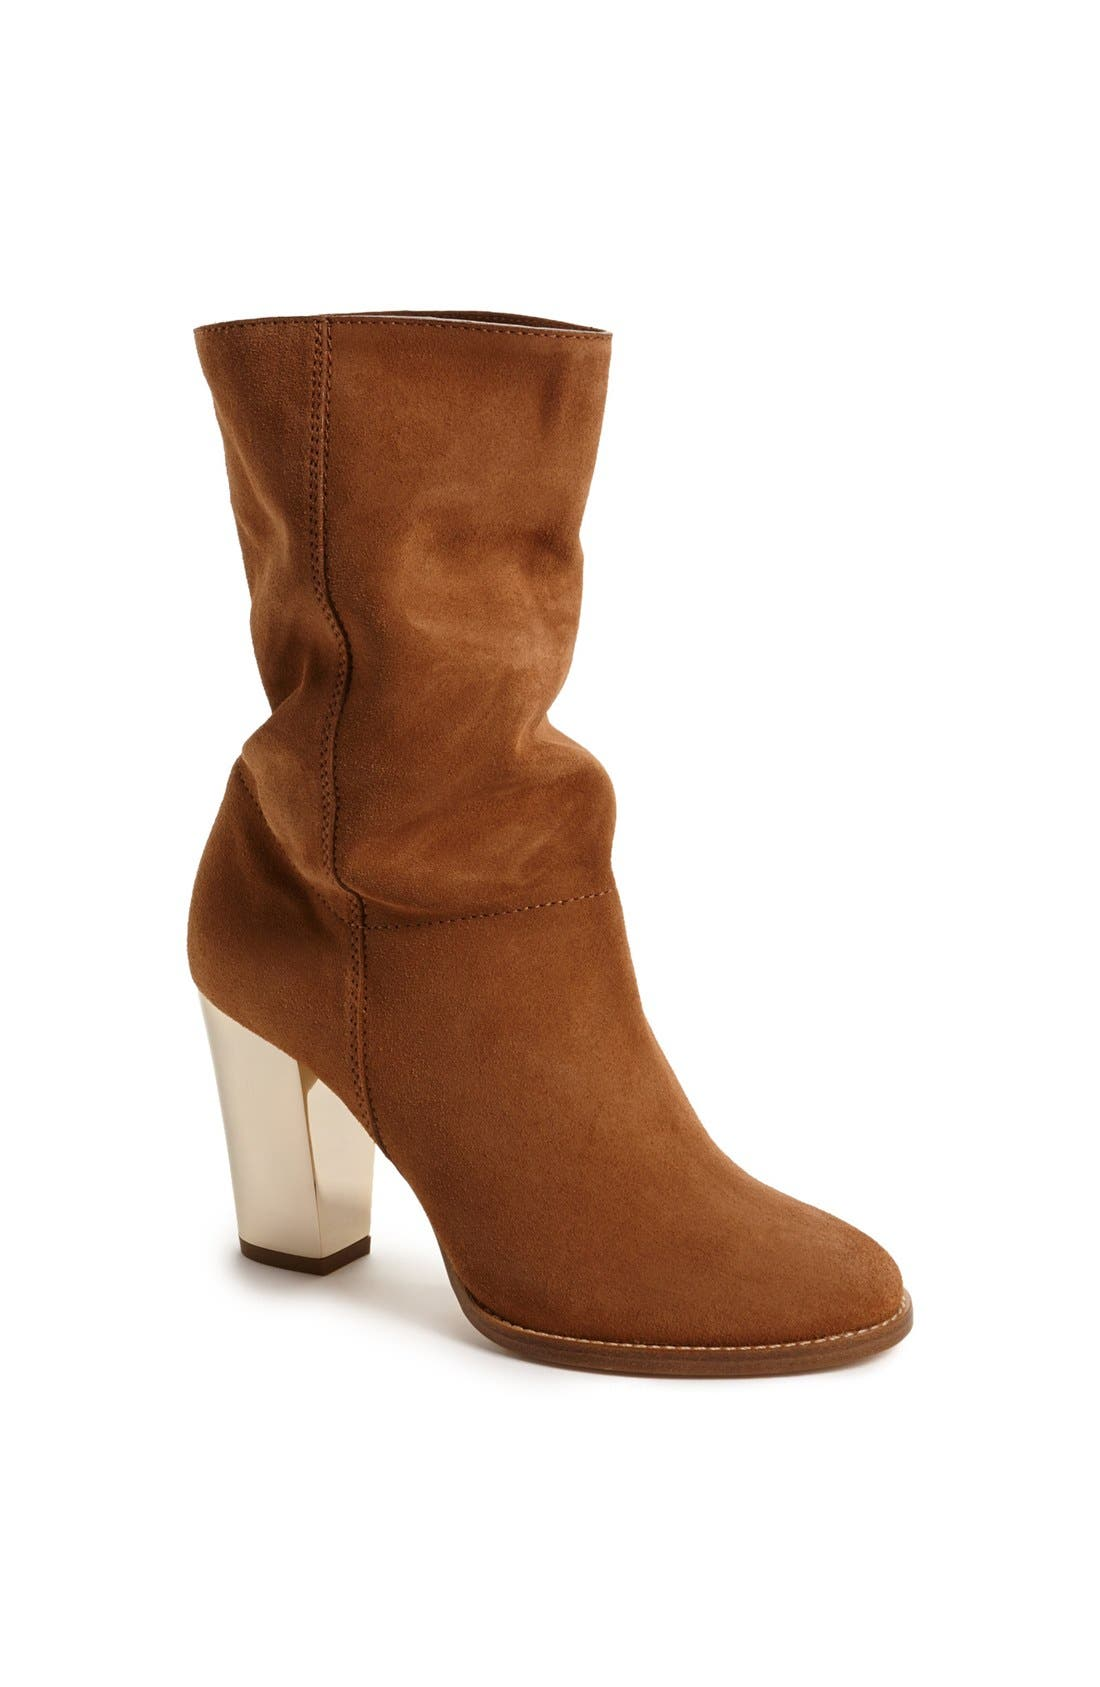 Alternate Image 1 Selected - Jimmy Choo 'Music' Boot